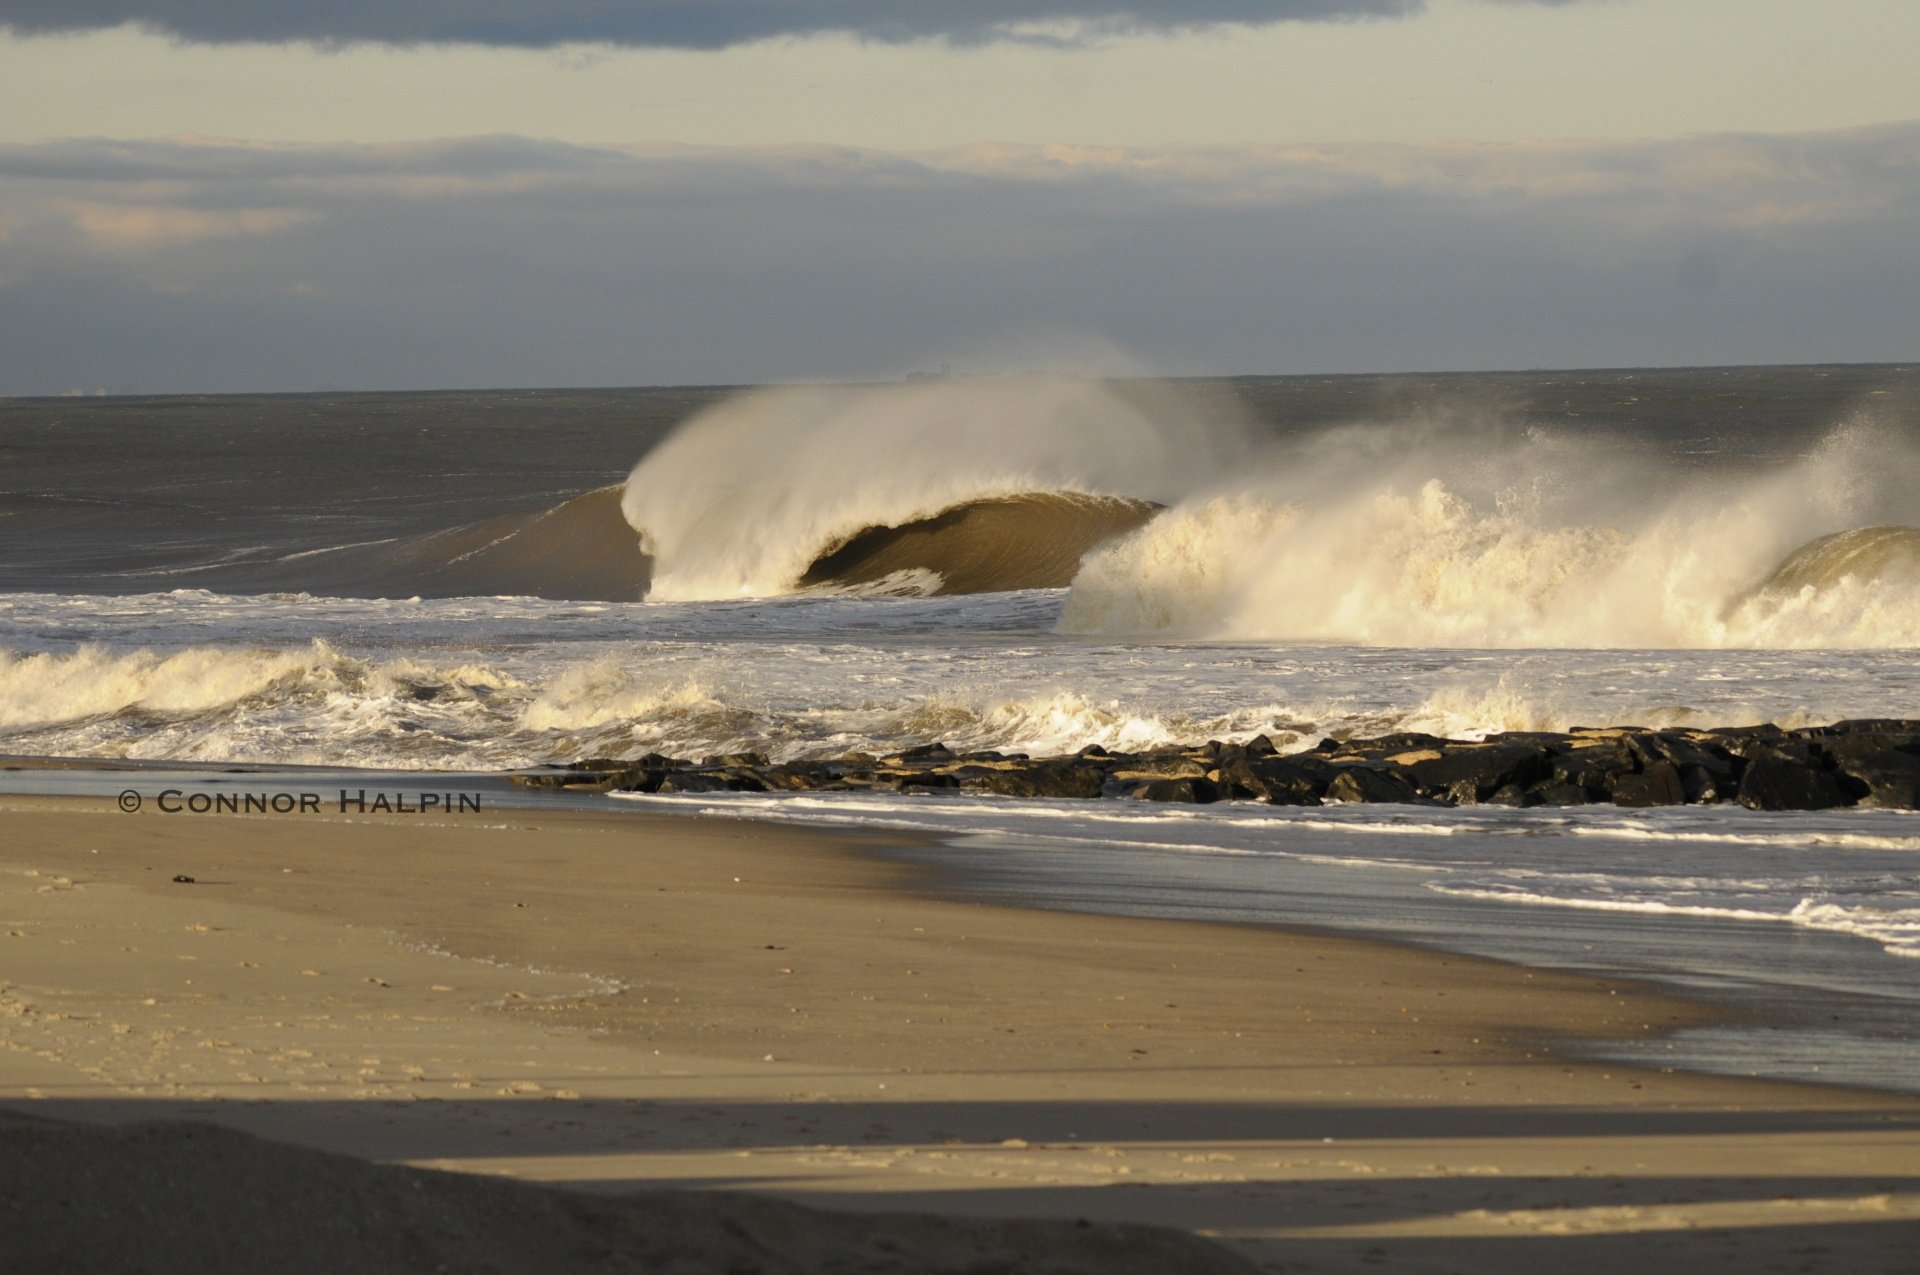 Connor Halpin's photo of Belmar